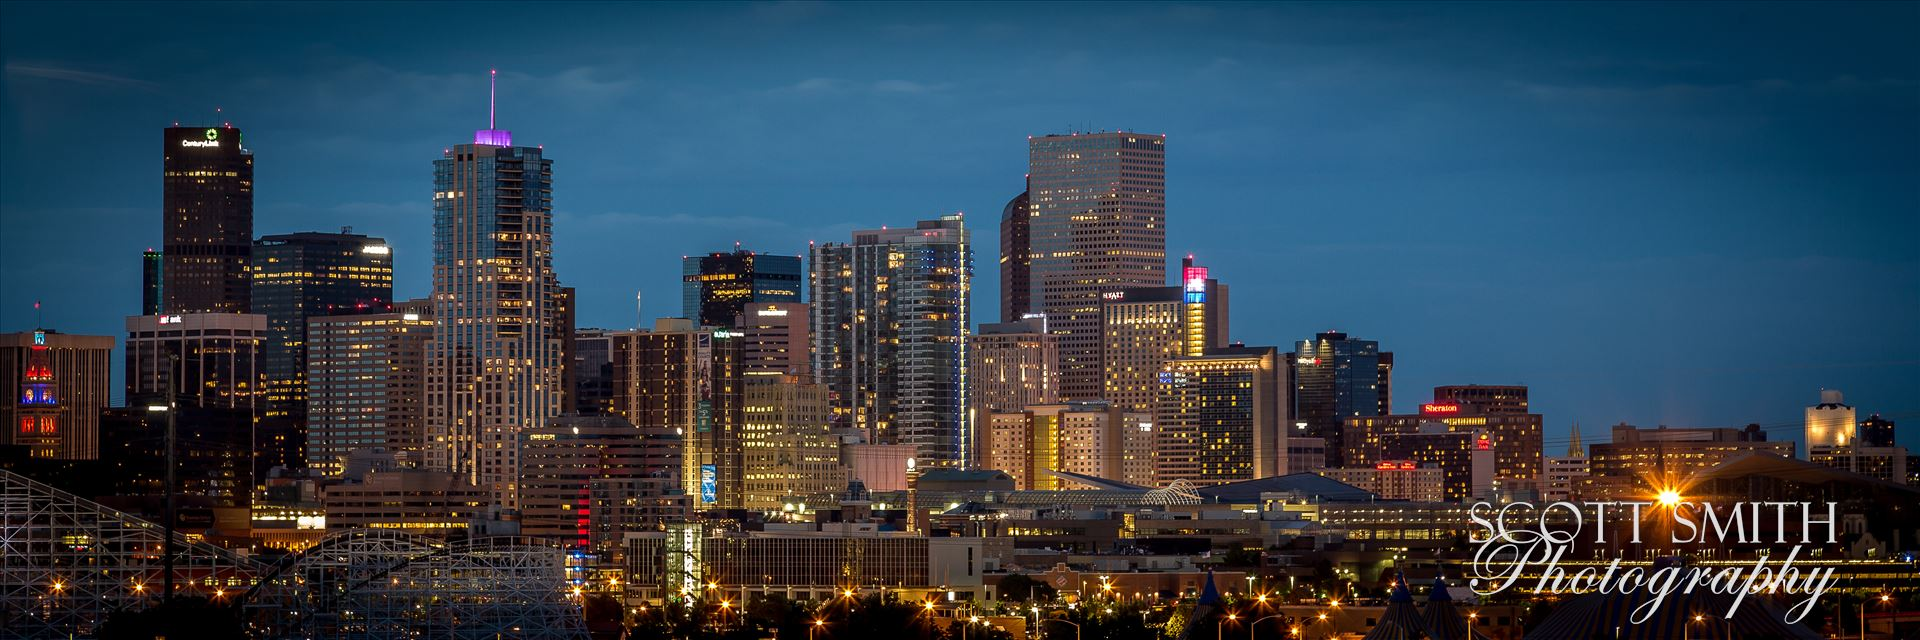 Denver at NightThe Denver skyline as seen from Mile High Stadium.